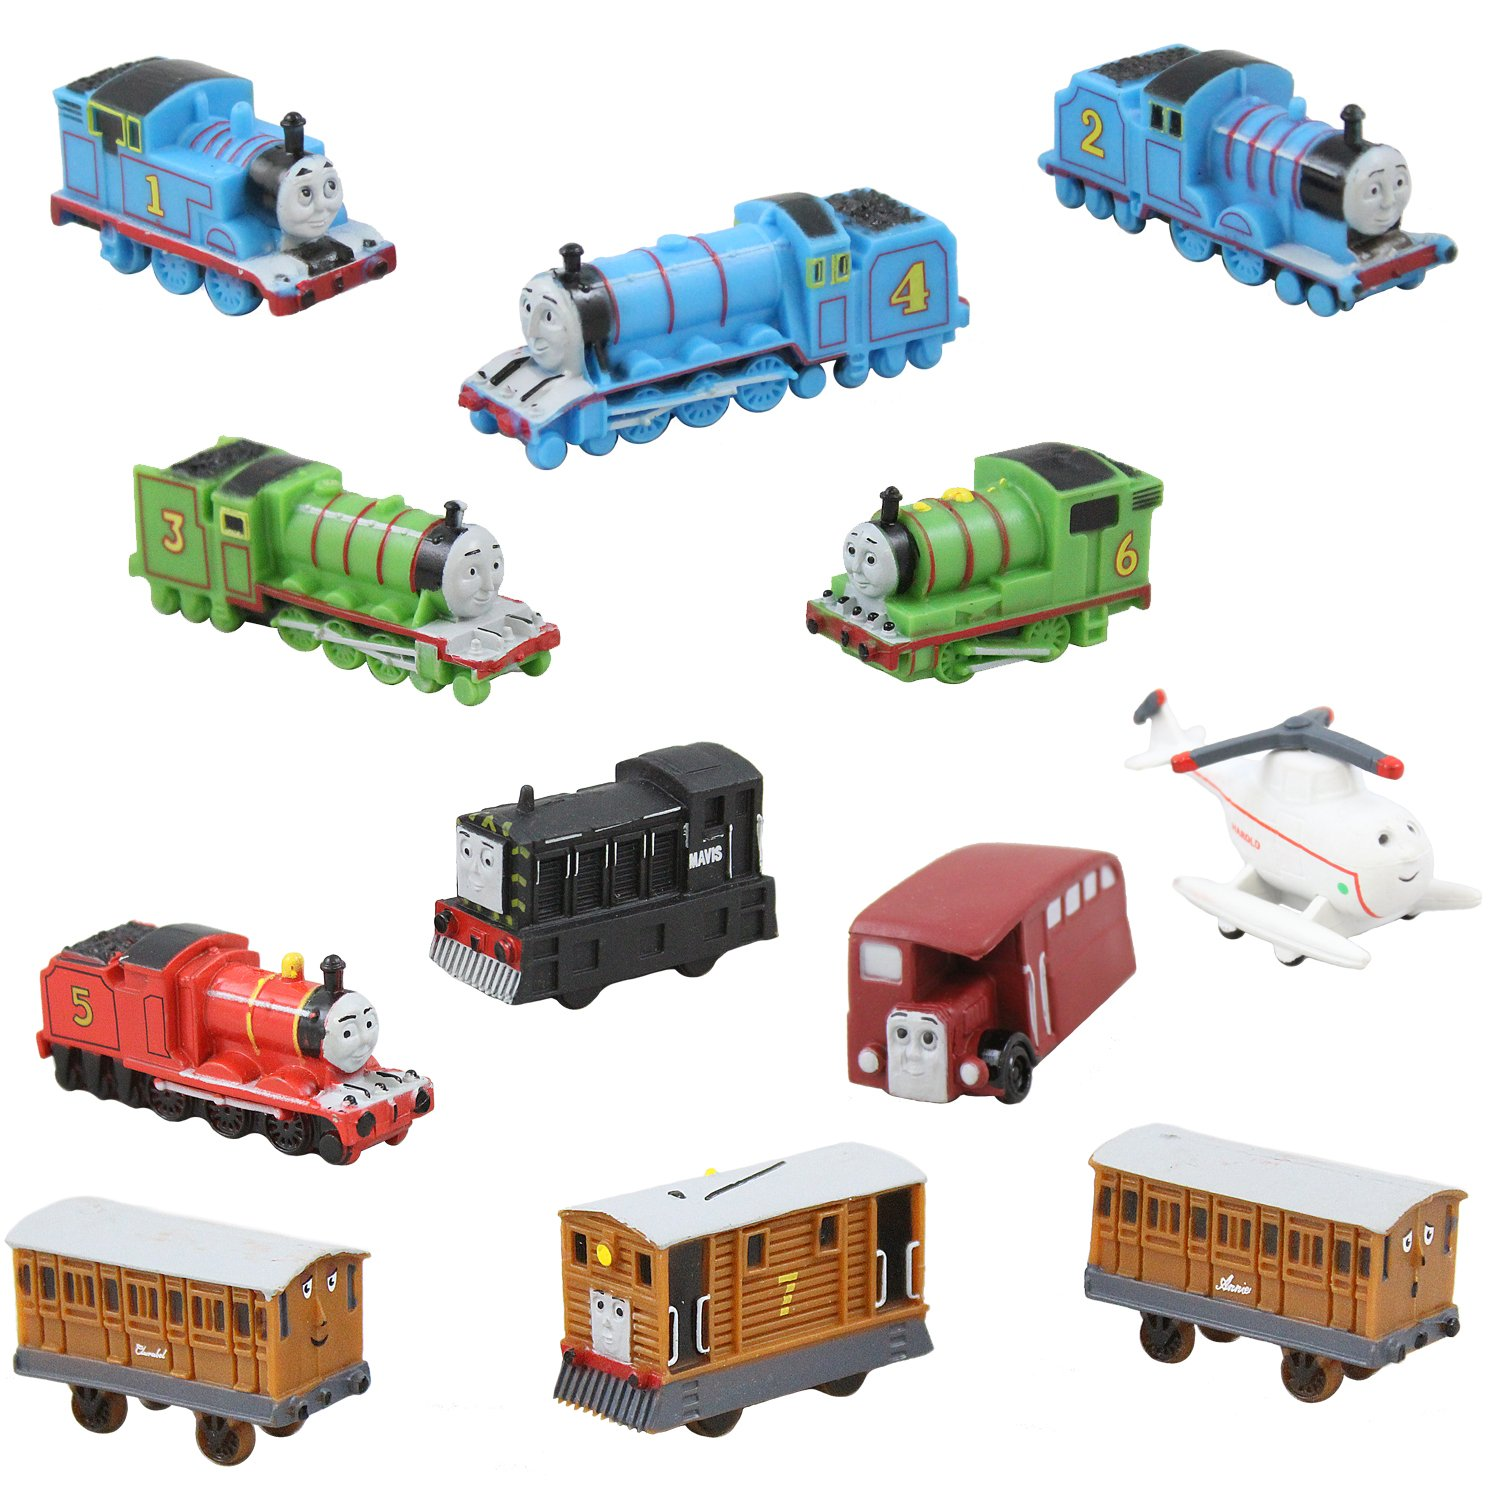 Prefilled Easter Eggs Save Your Time Durable 6 Inch Egg in Bright Colorful Designs 1 Jumbo Toy Filled Easter Egg With 12 Thomas The Train Figures Perfect As Cake Toppers And Kids Party Favors Coolinko